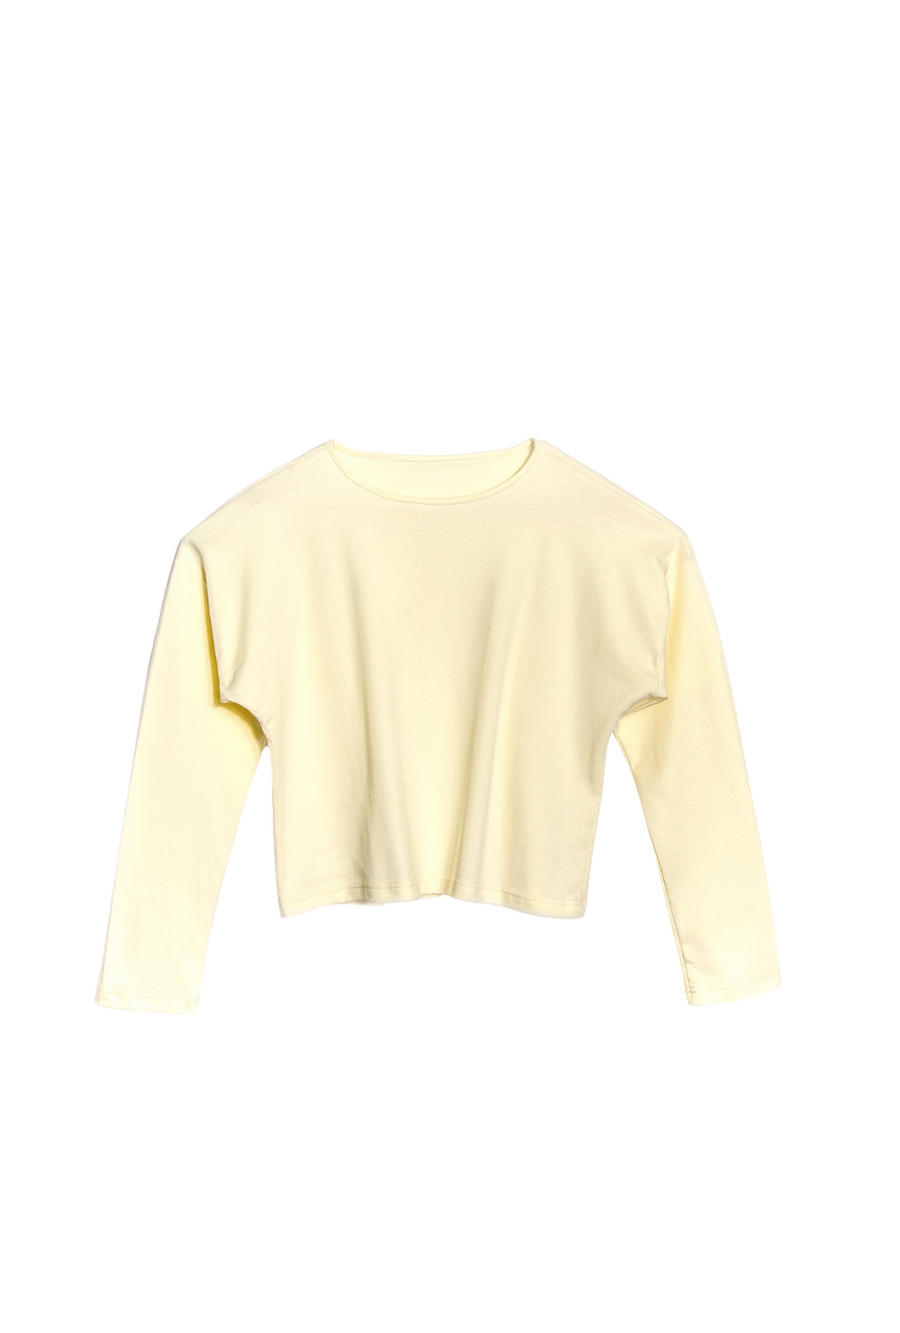 Be Kind - Basic Top Hueso